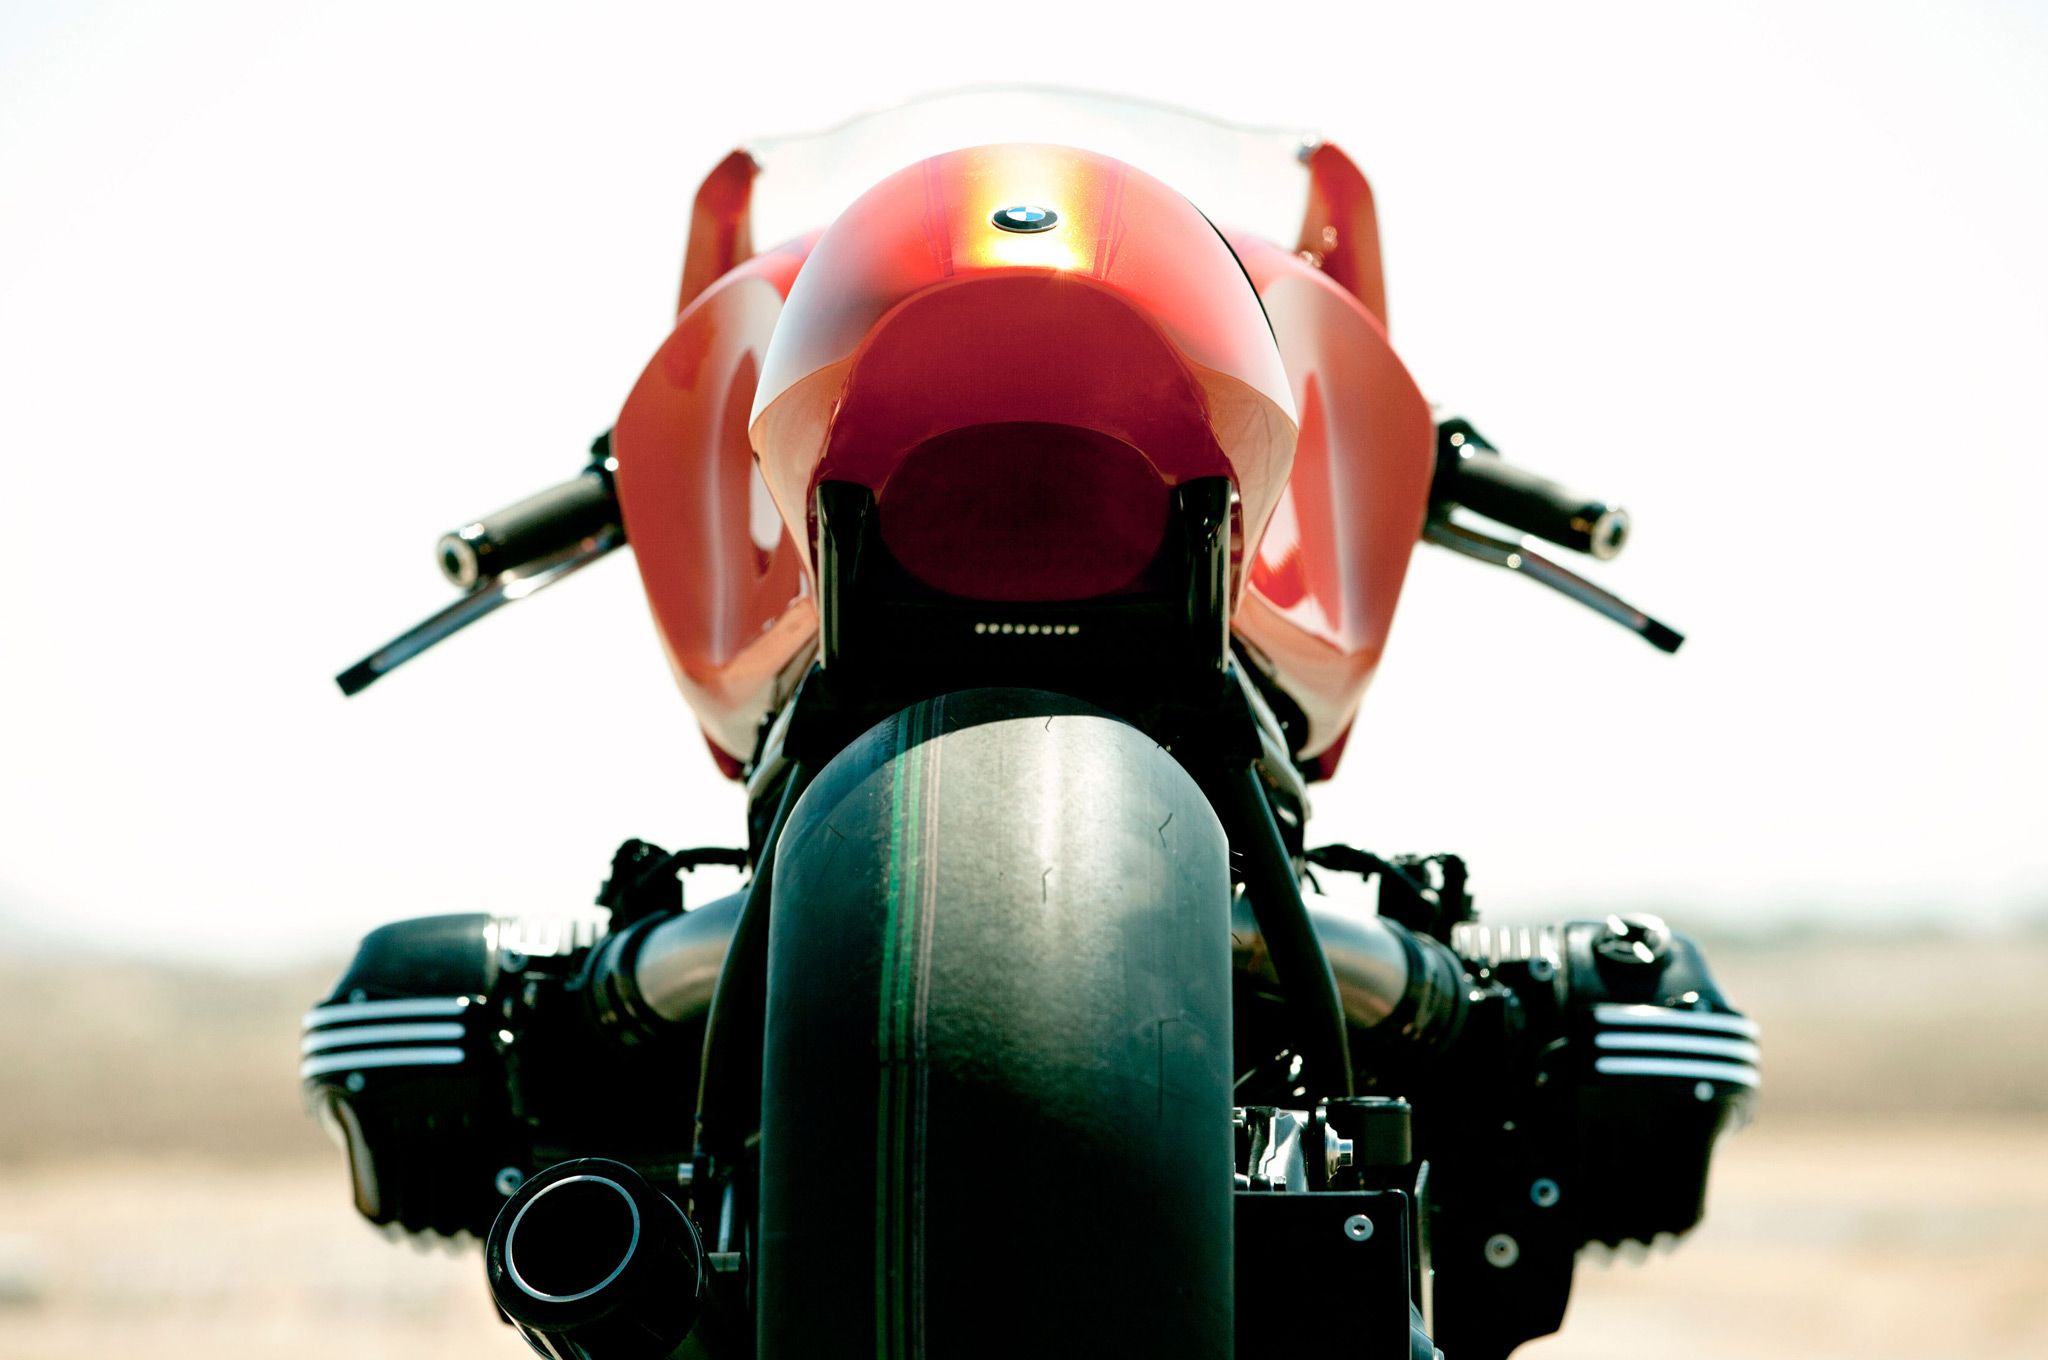 bmw-concept-ninety-motorcycle-rear-close-up.jpg